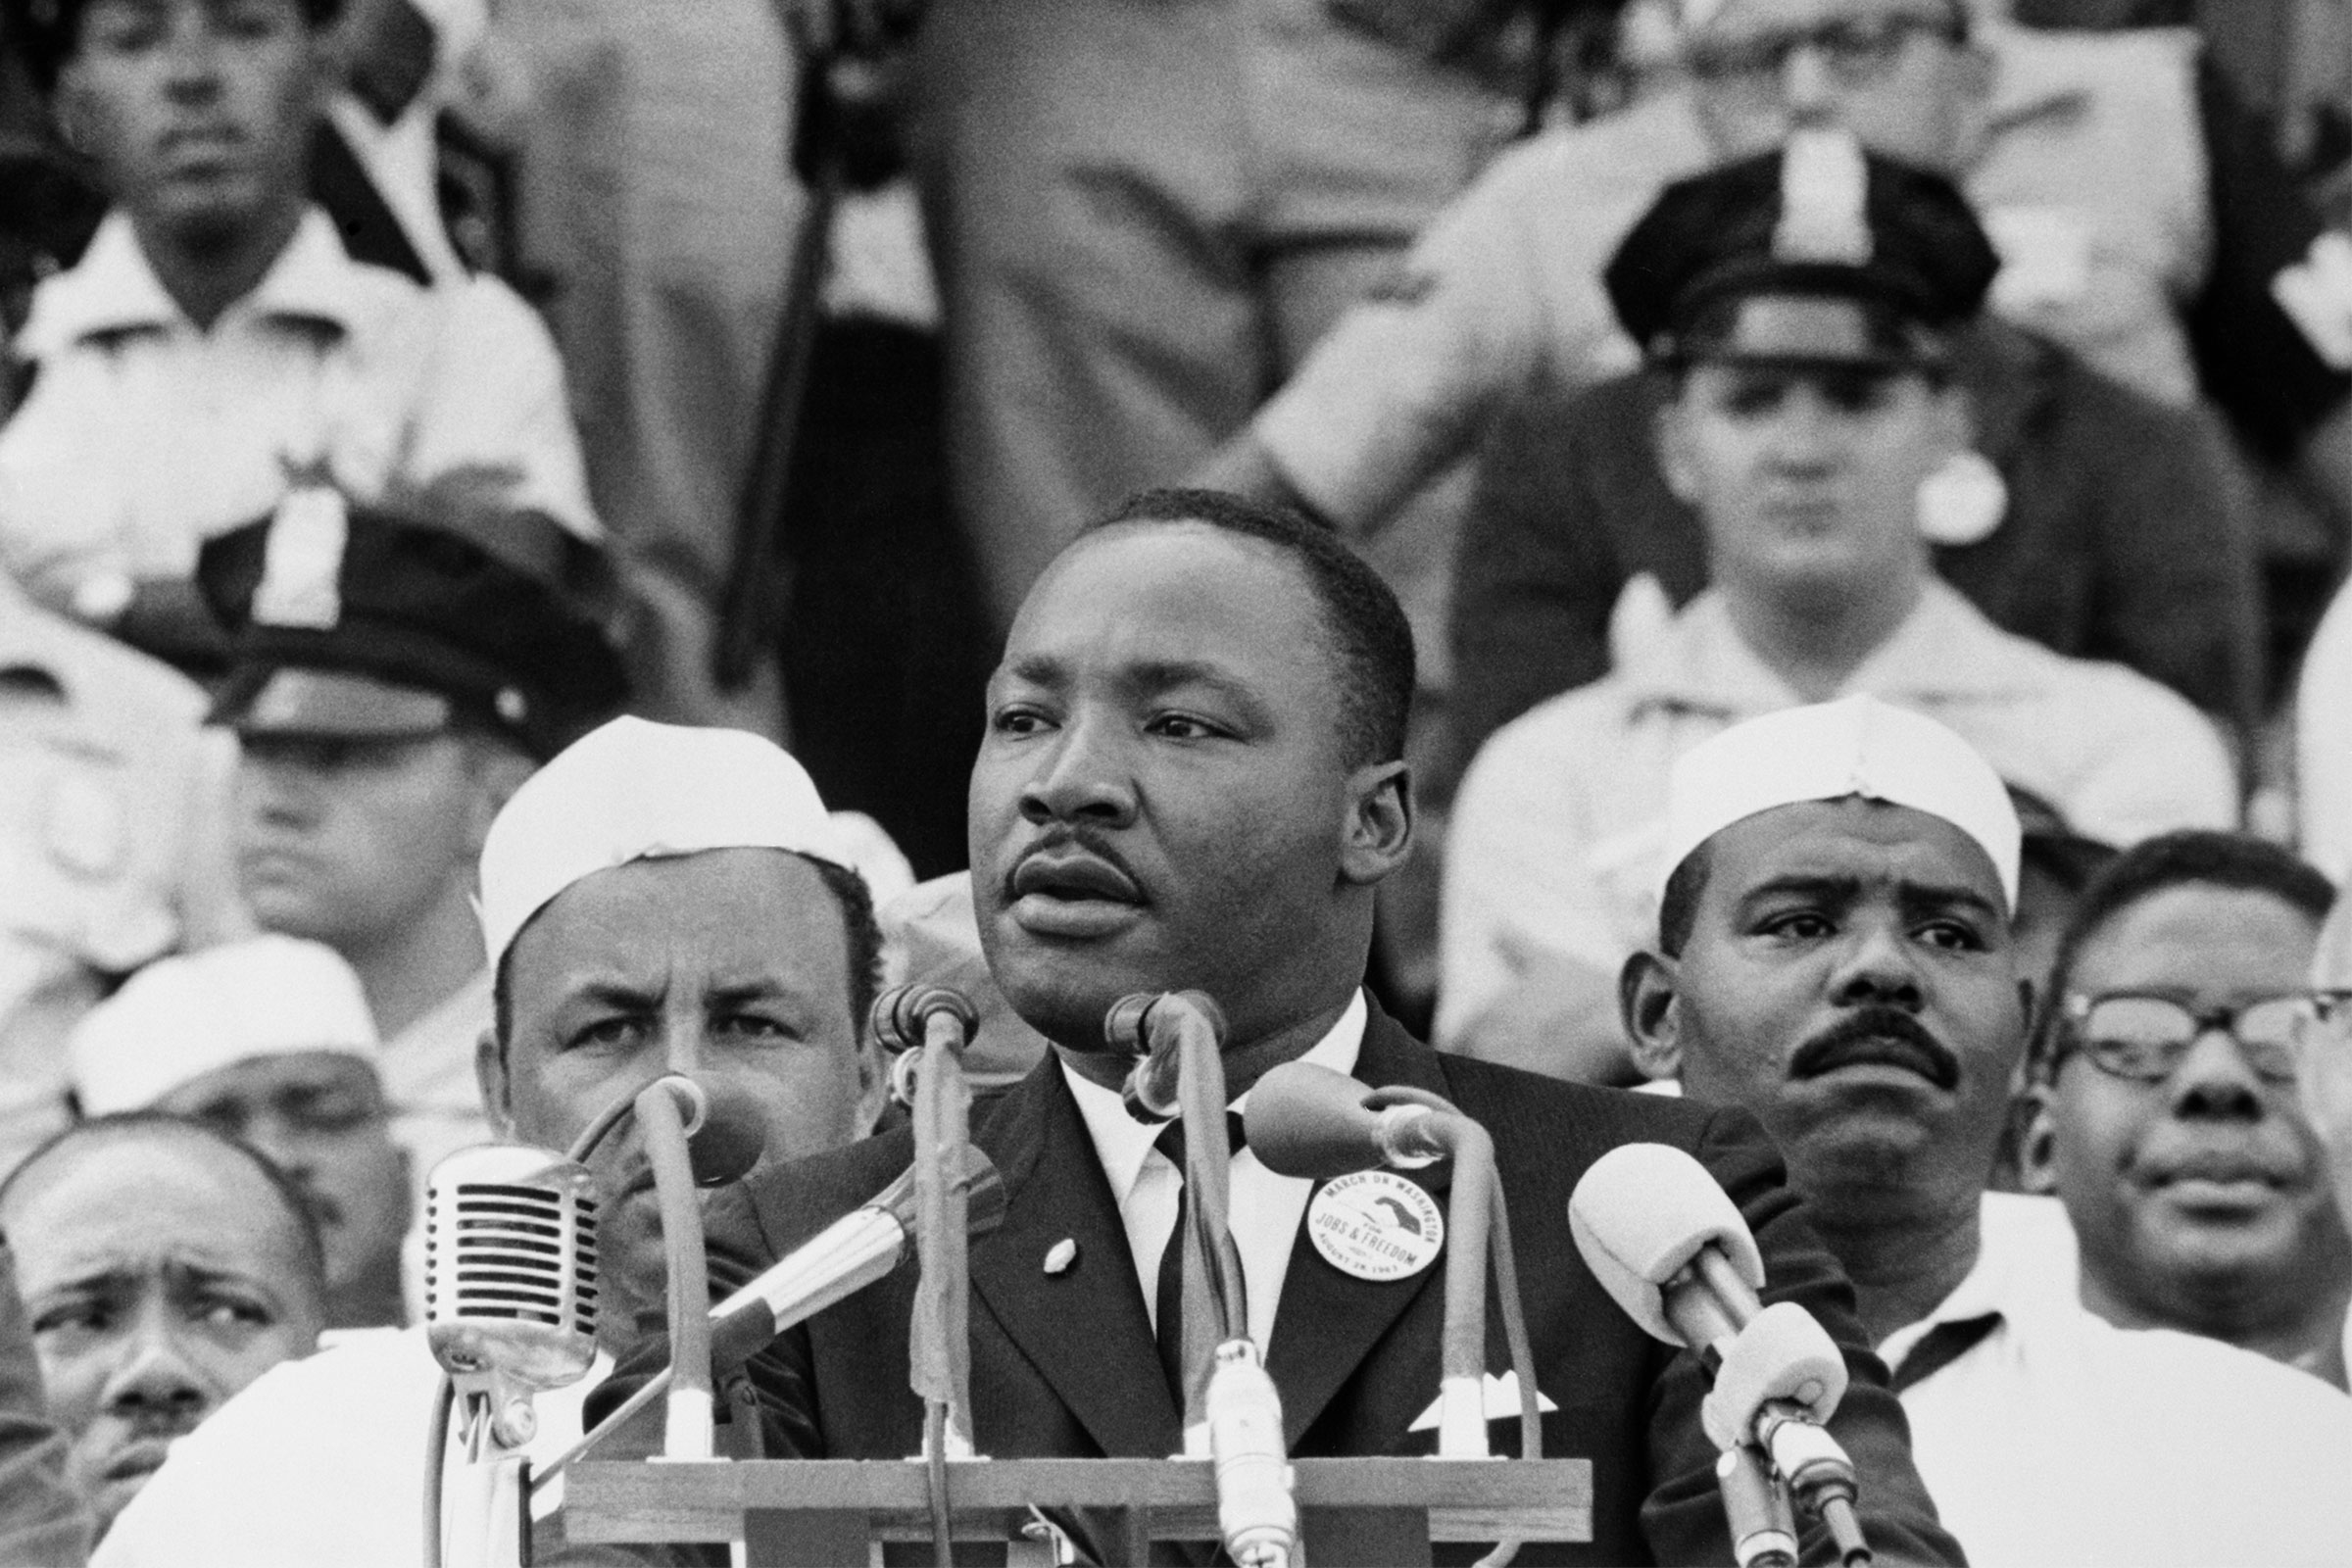 Martin Luther King Jr. gives his  I Have a Dream  speech to a crowd during the March on Washington on August 28, 1963.